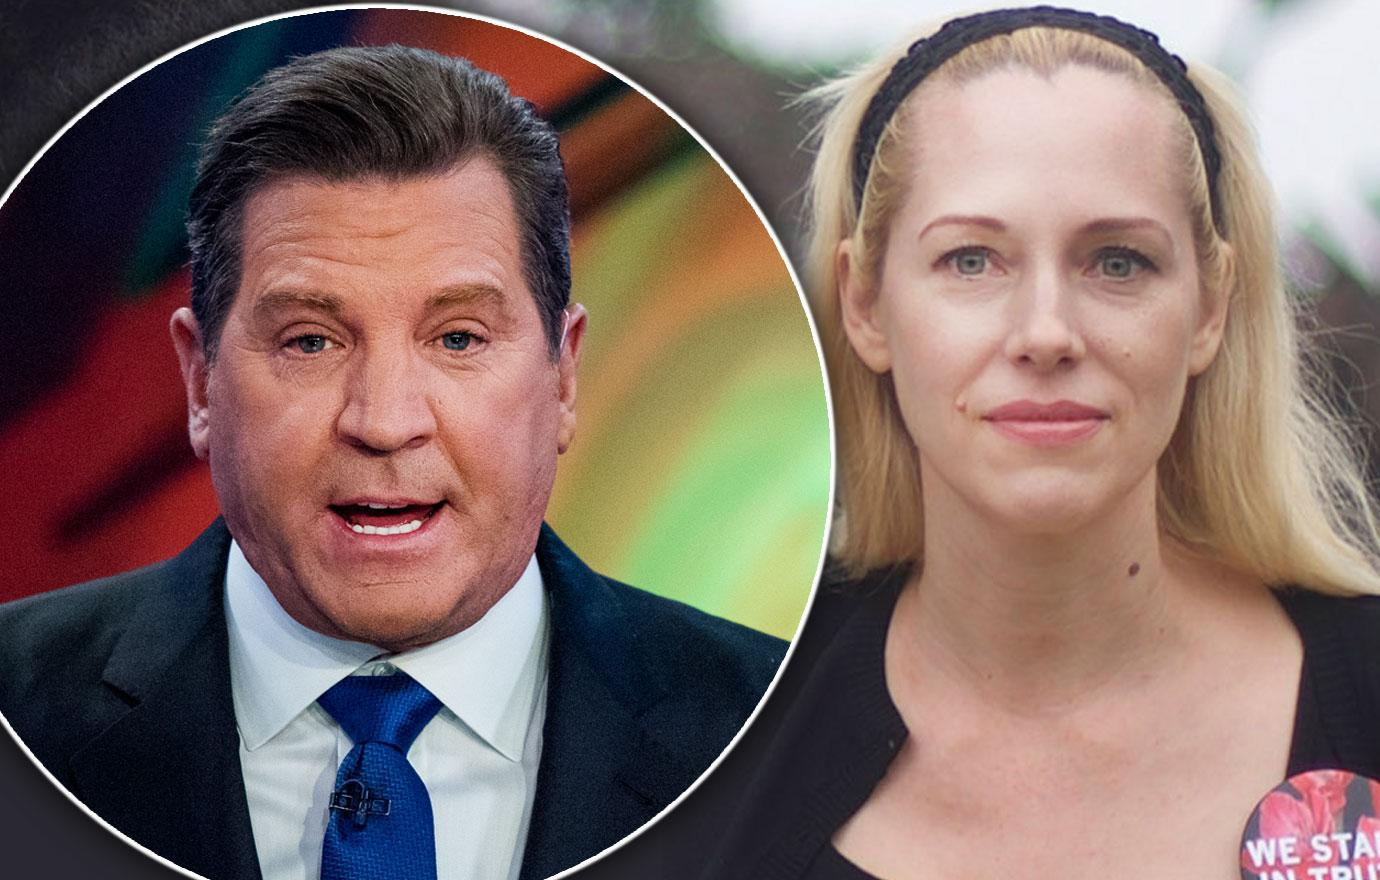 Fox Host Eric Bolling Sexually Harassed Woman